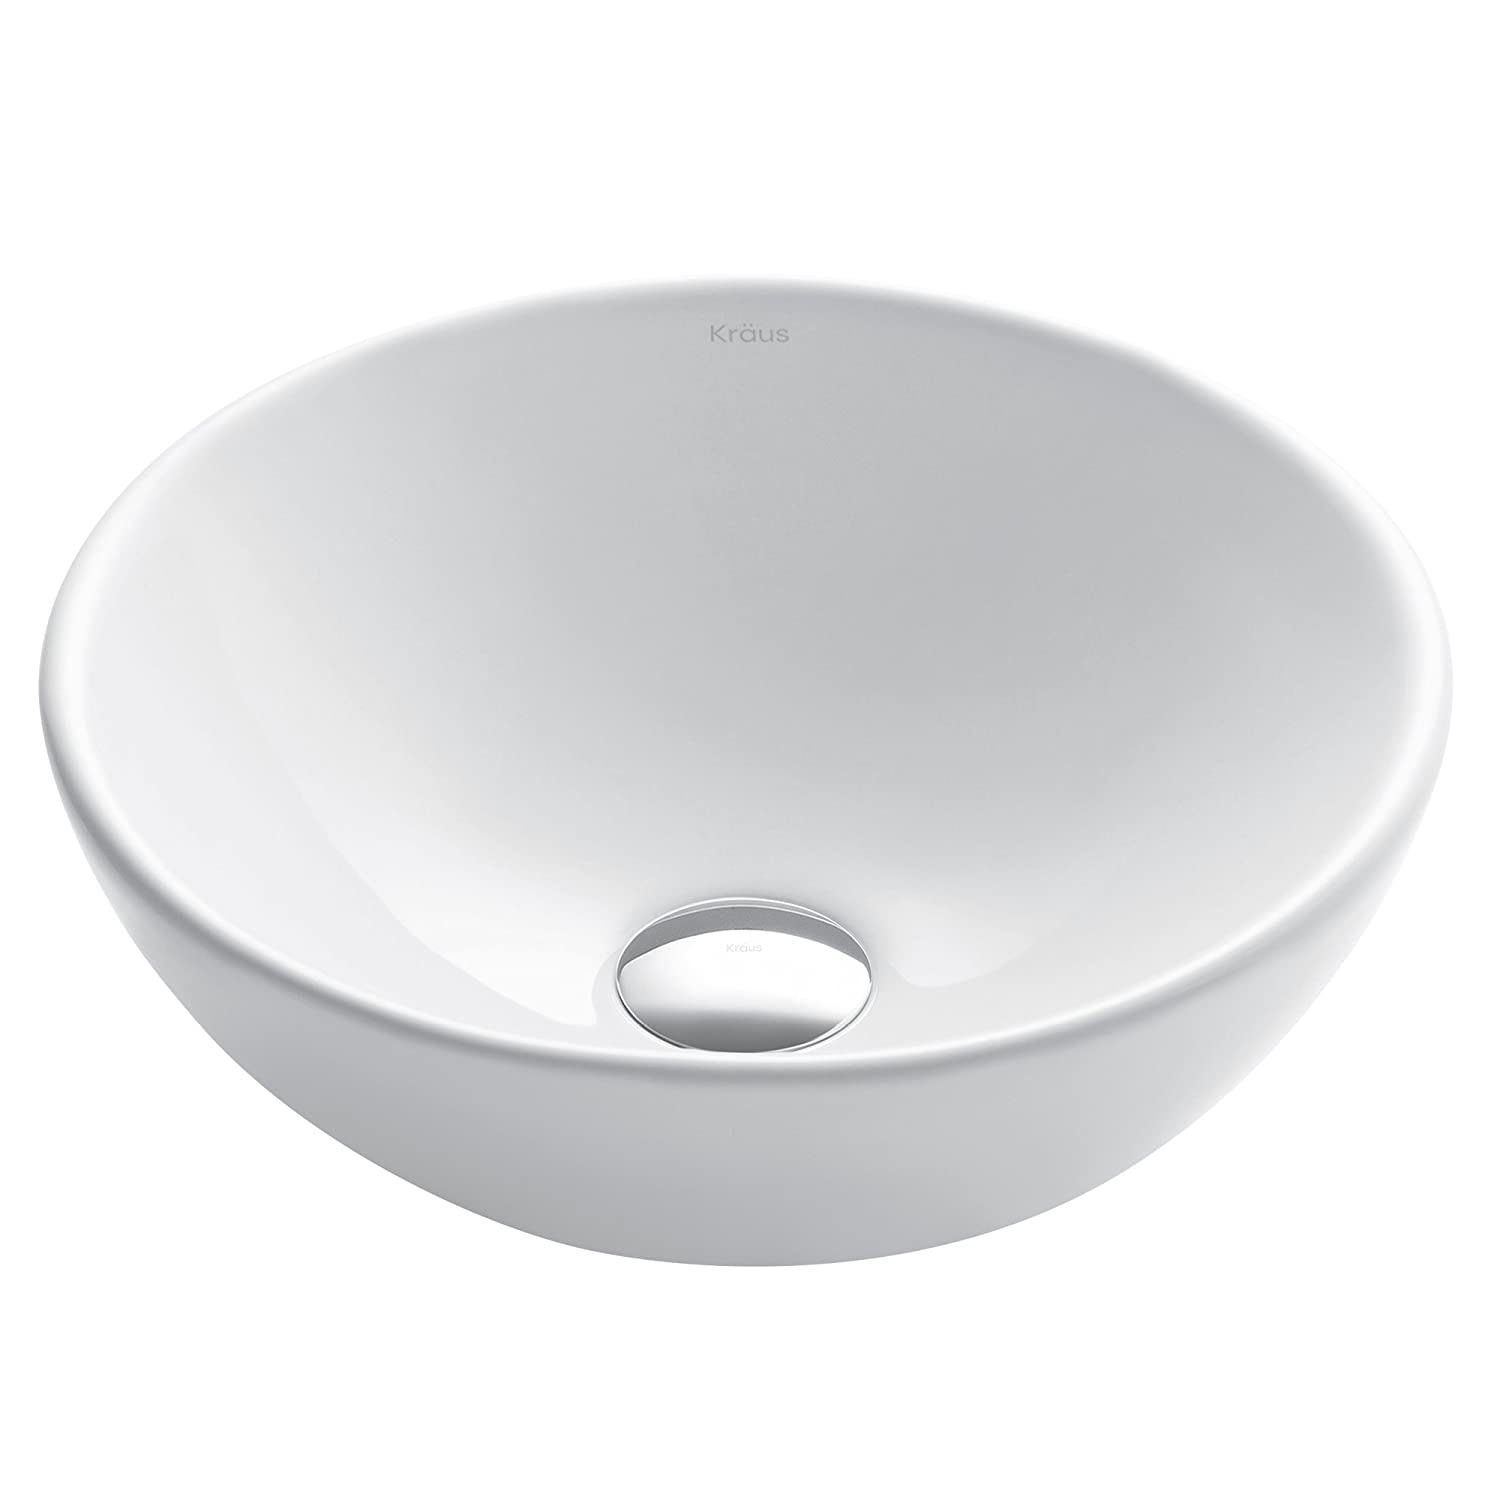 Kraus KCV-341 Elavo White Ceramic Small Round Vessel Bathroom Sink